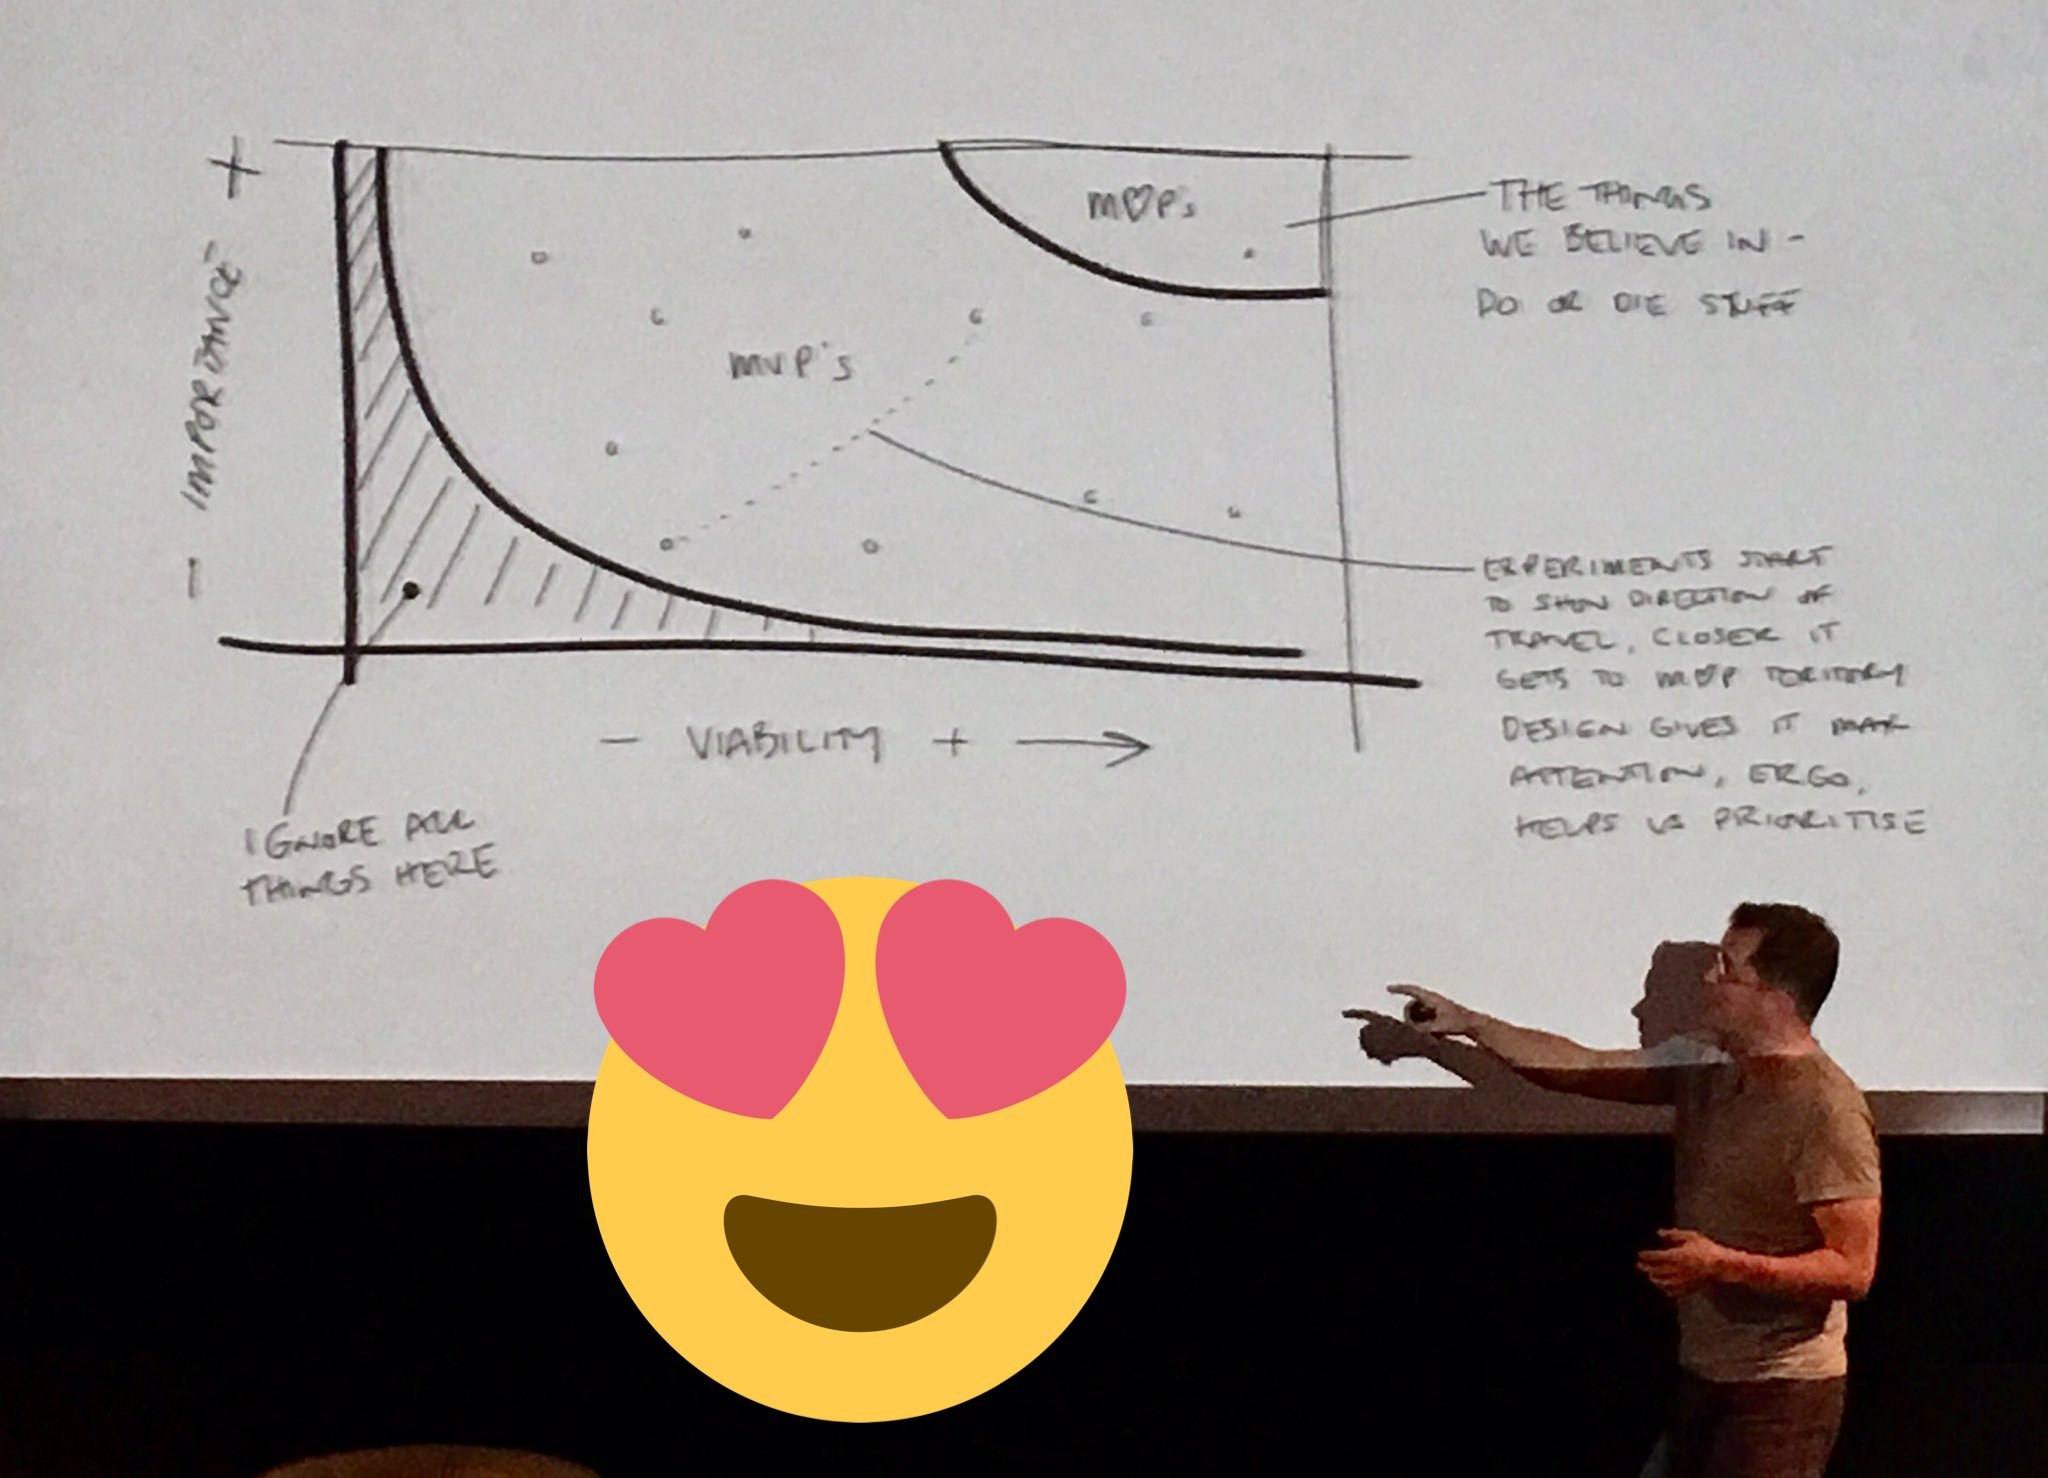 """Quality = Minimun Viable Product & Minimum Lovable Product"" by @stevebuzzpearce. Here is the ratio to choose the V and the L #ldconf https://t.co/I4aI4GMhau"